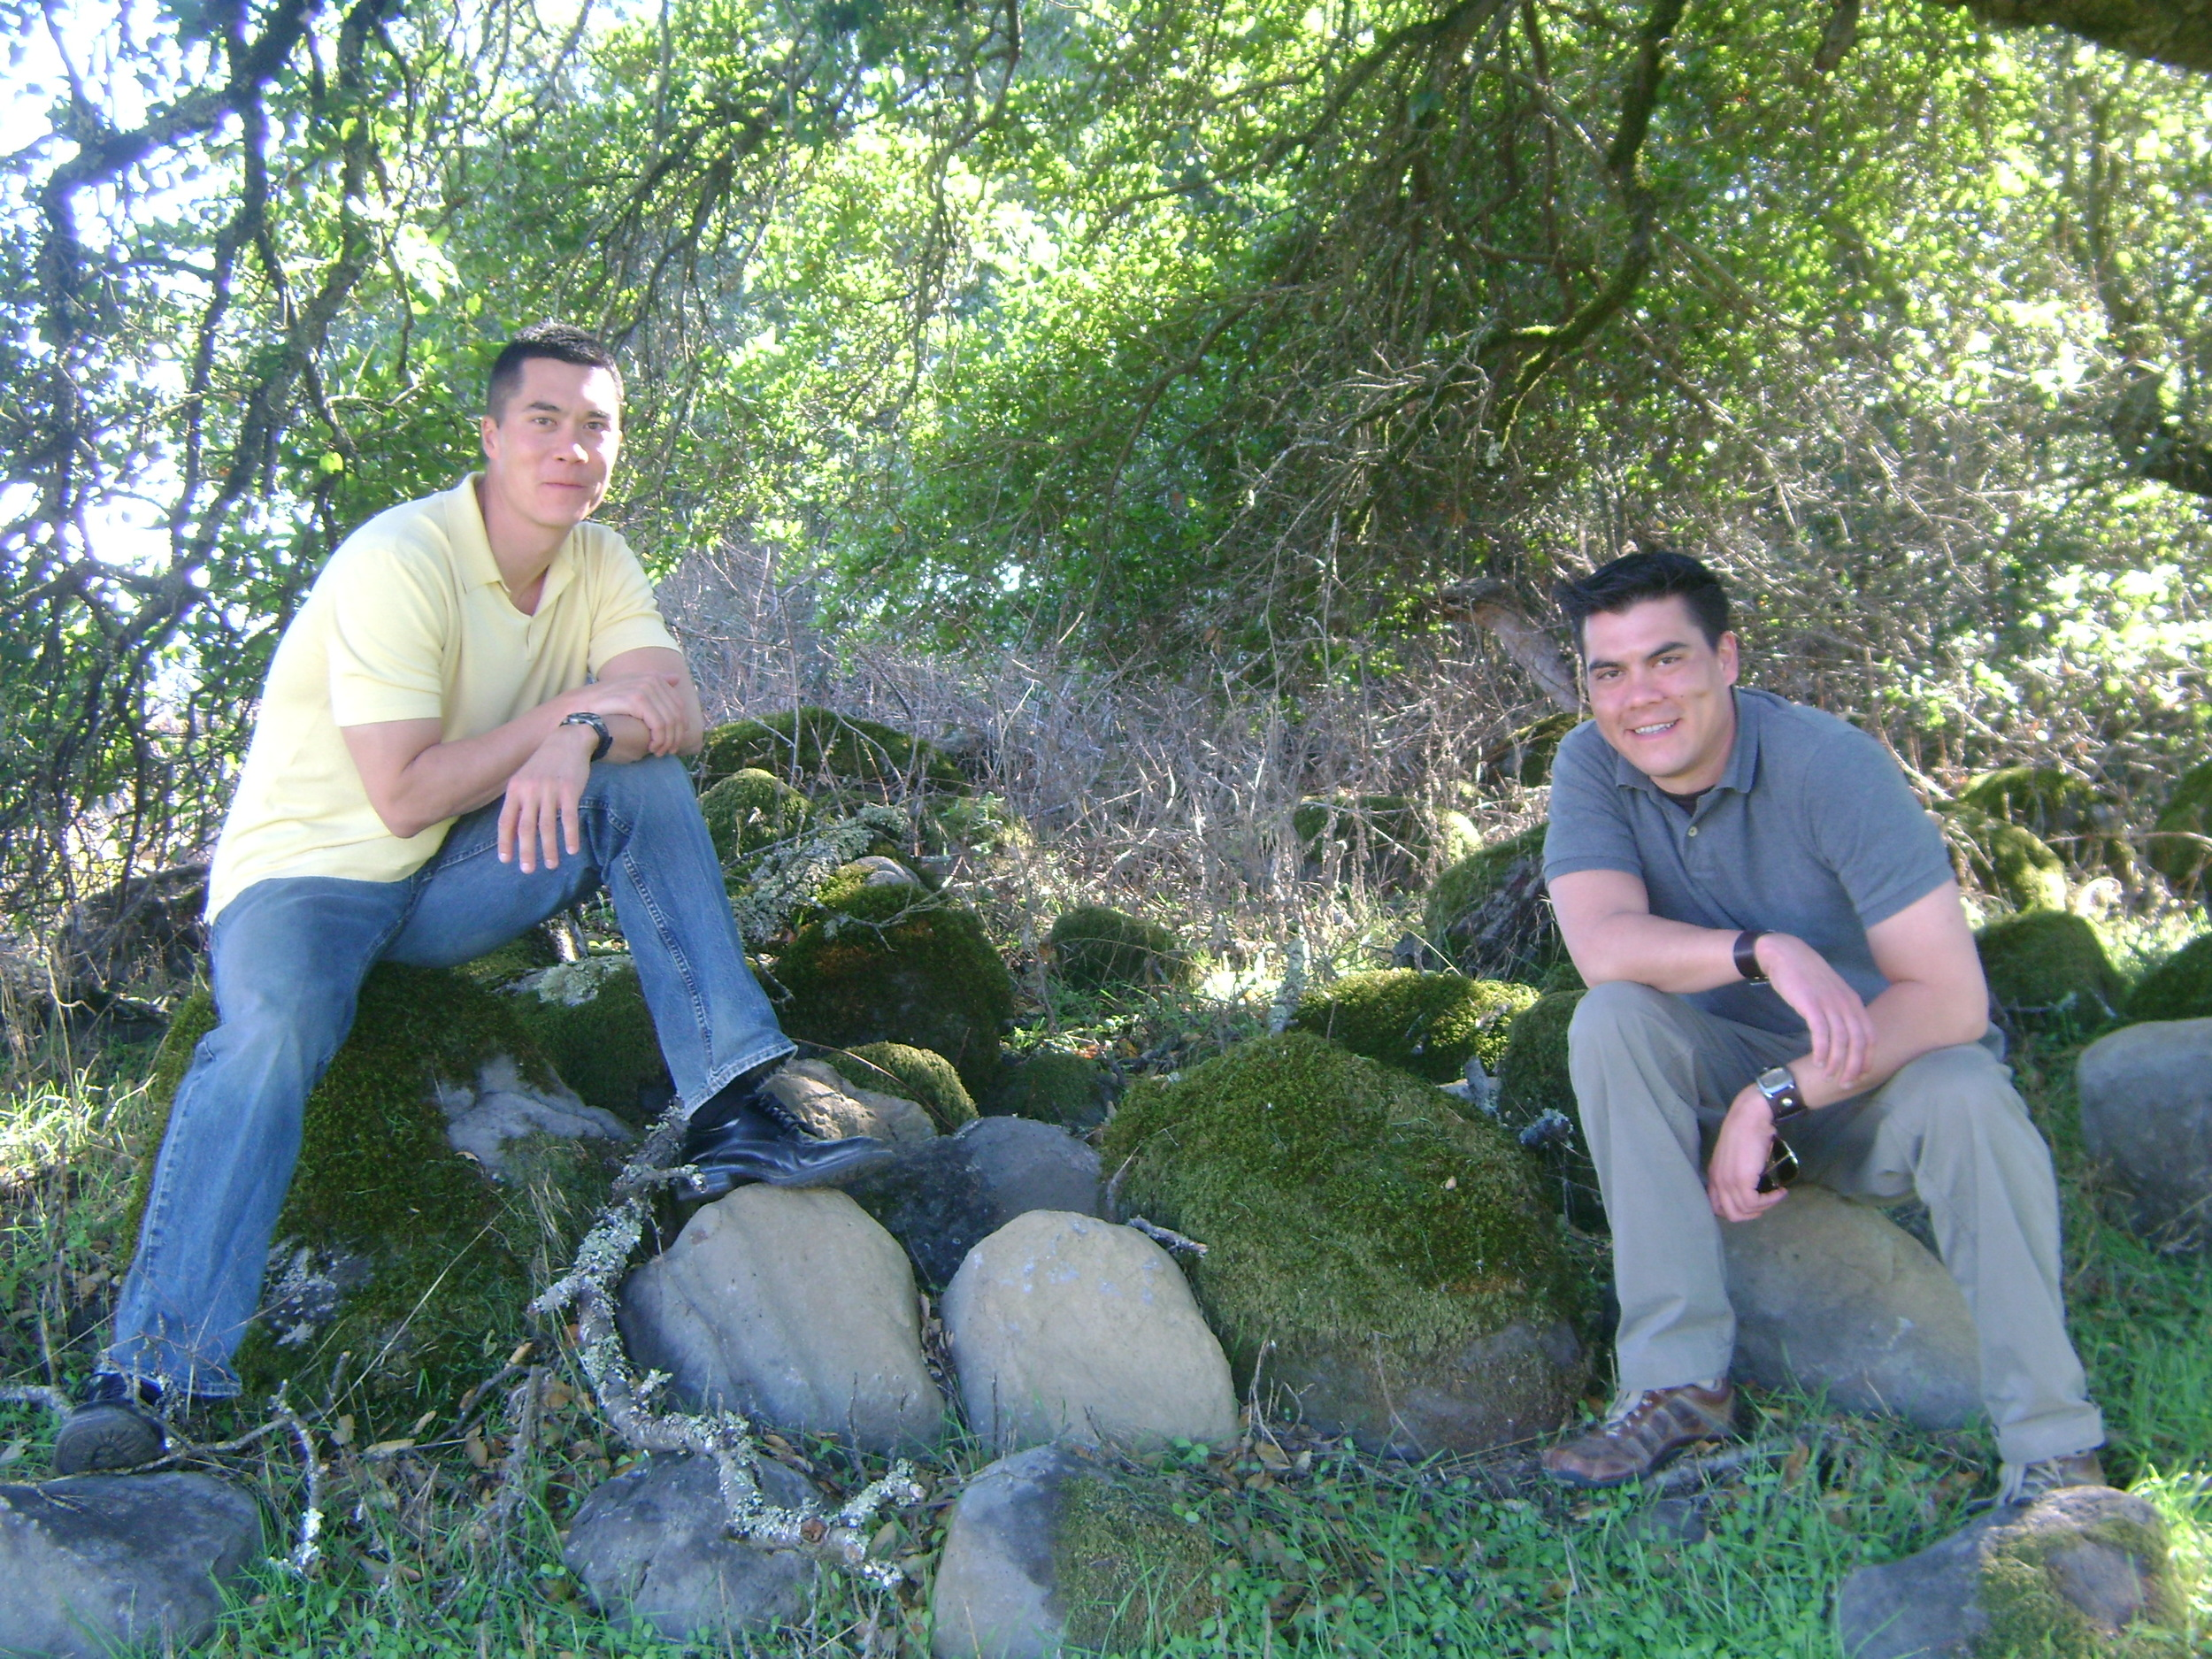 James (left) and Mark Blanchard relaxing at one of our Sonoma County vineyard sources. Photo by Steve Blanchard.